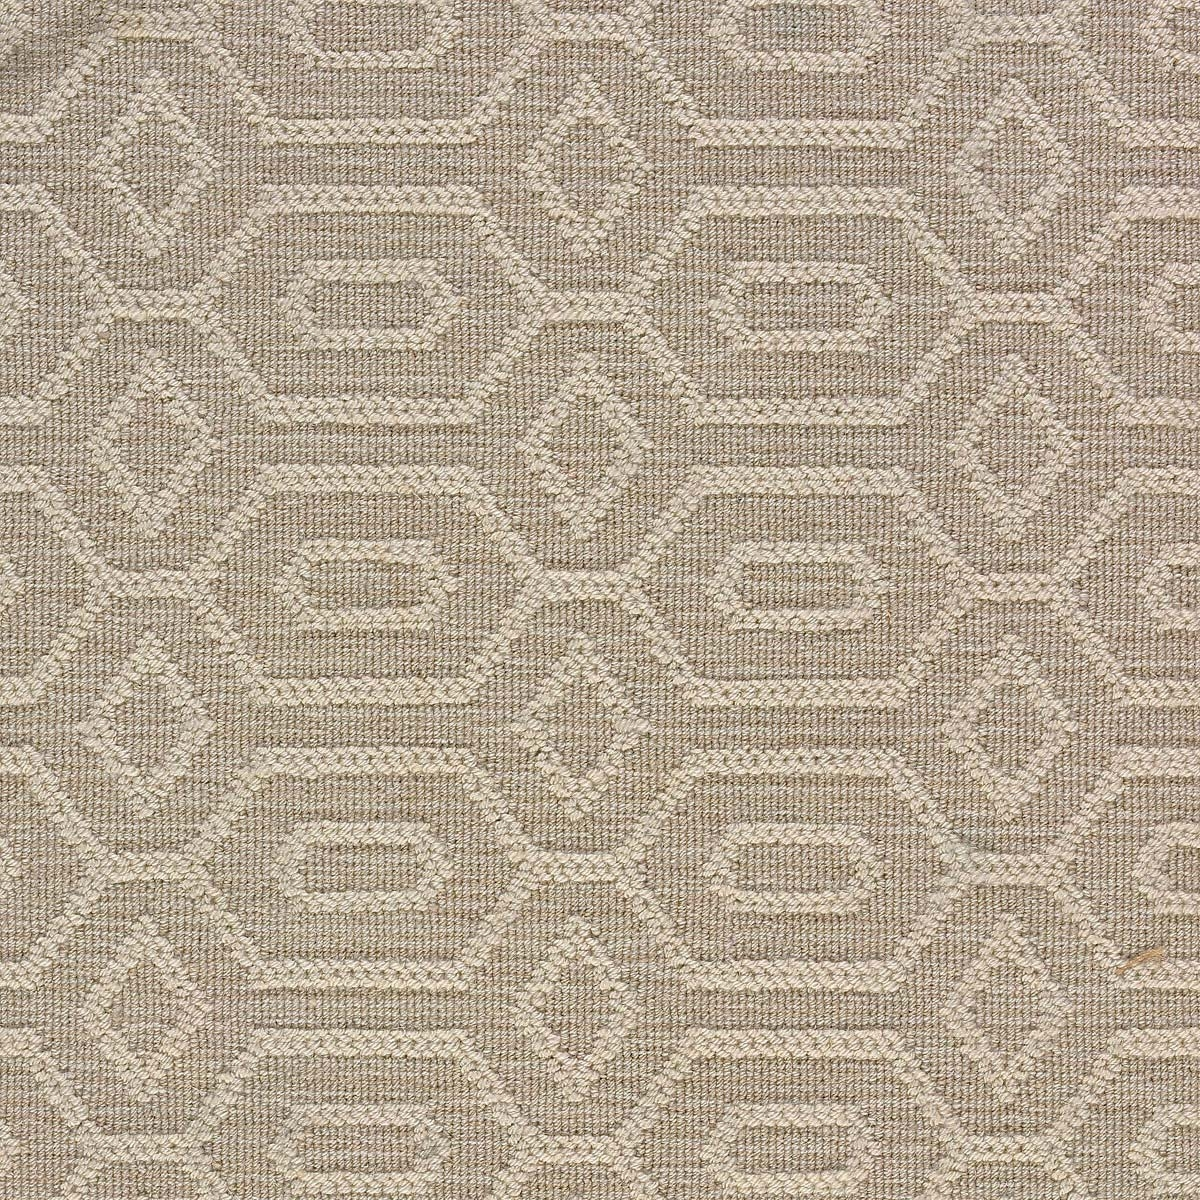 Corgi 2 Patterns Carpets Collection Tim Page Carpets Intended For Geometric Carpet Patterns (View 15 of 15)